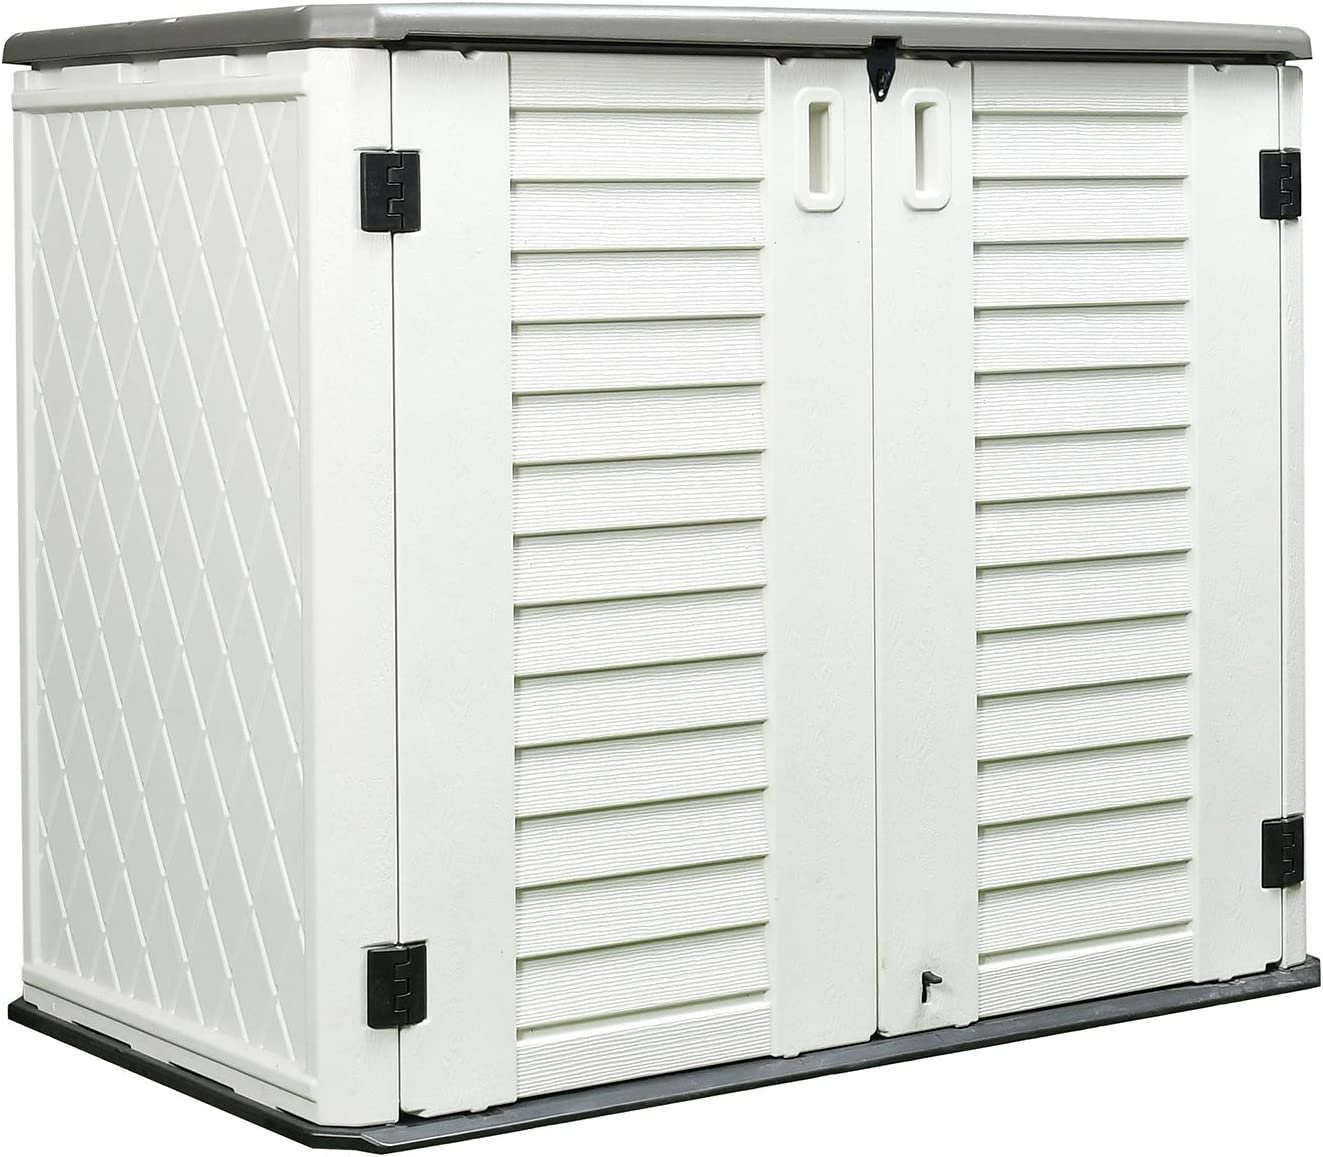 ADDOK Outdoor Storage Shed Multi-Function, 4.2 x 3.4 Foot Lockable Horizontal Storage Unit Weather Resistance, Thick HDEP Resin Storage Cabinet for Backyards, Patio, Garden (Off-White shed)